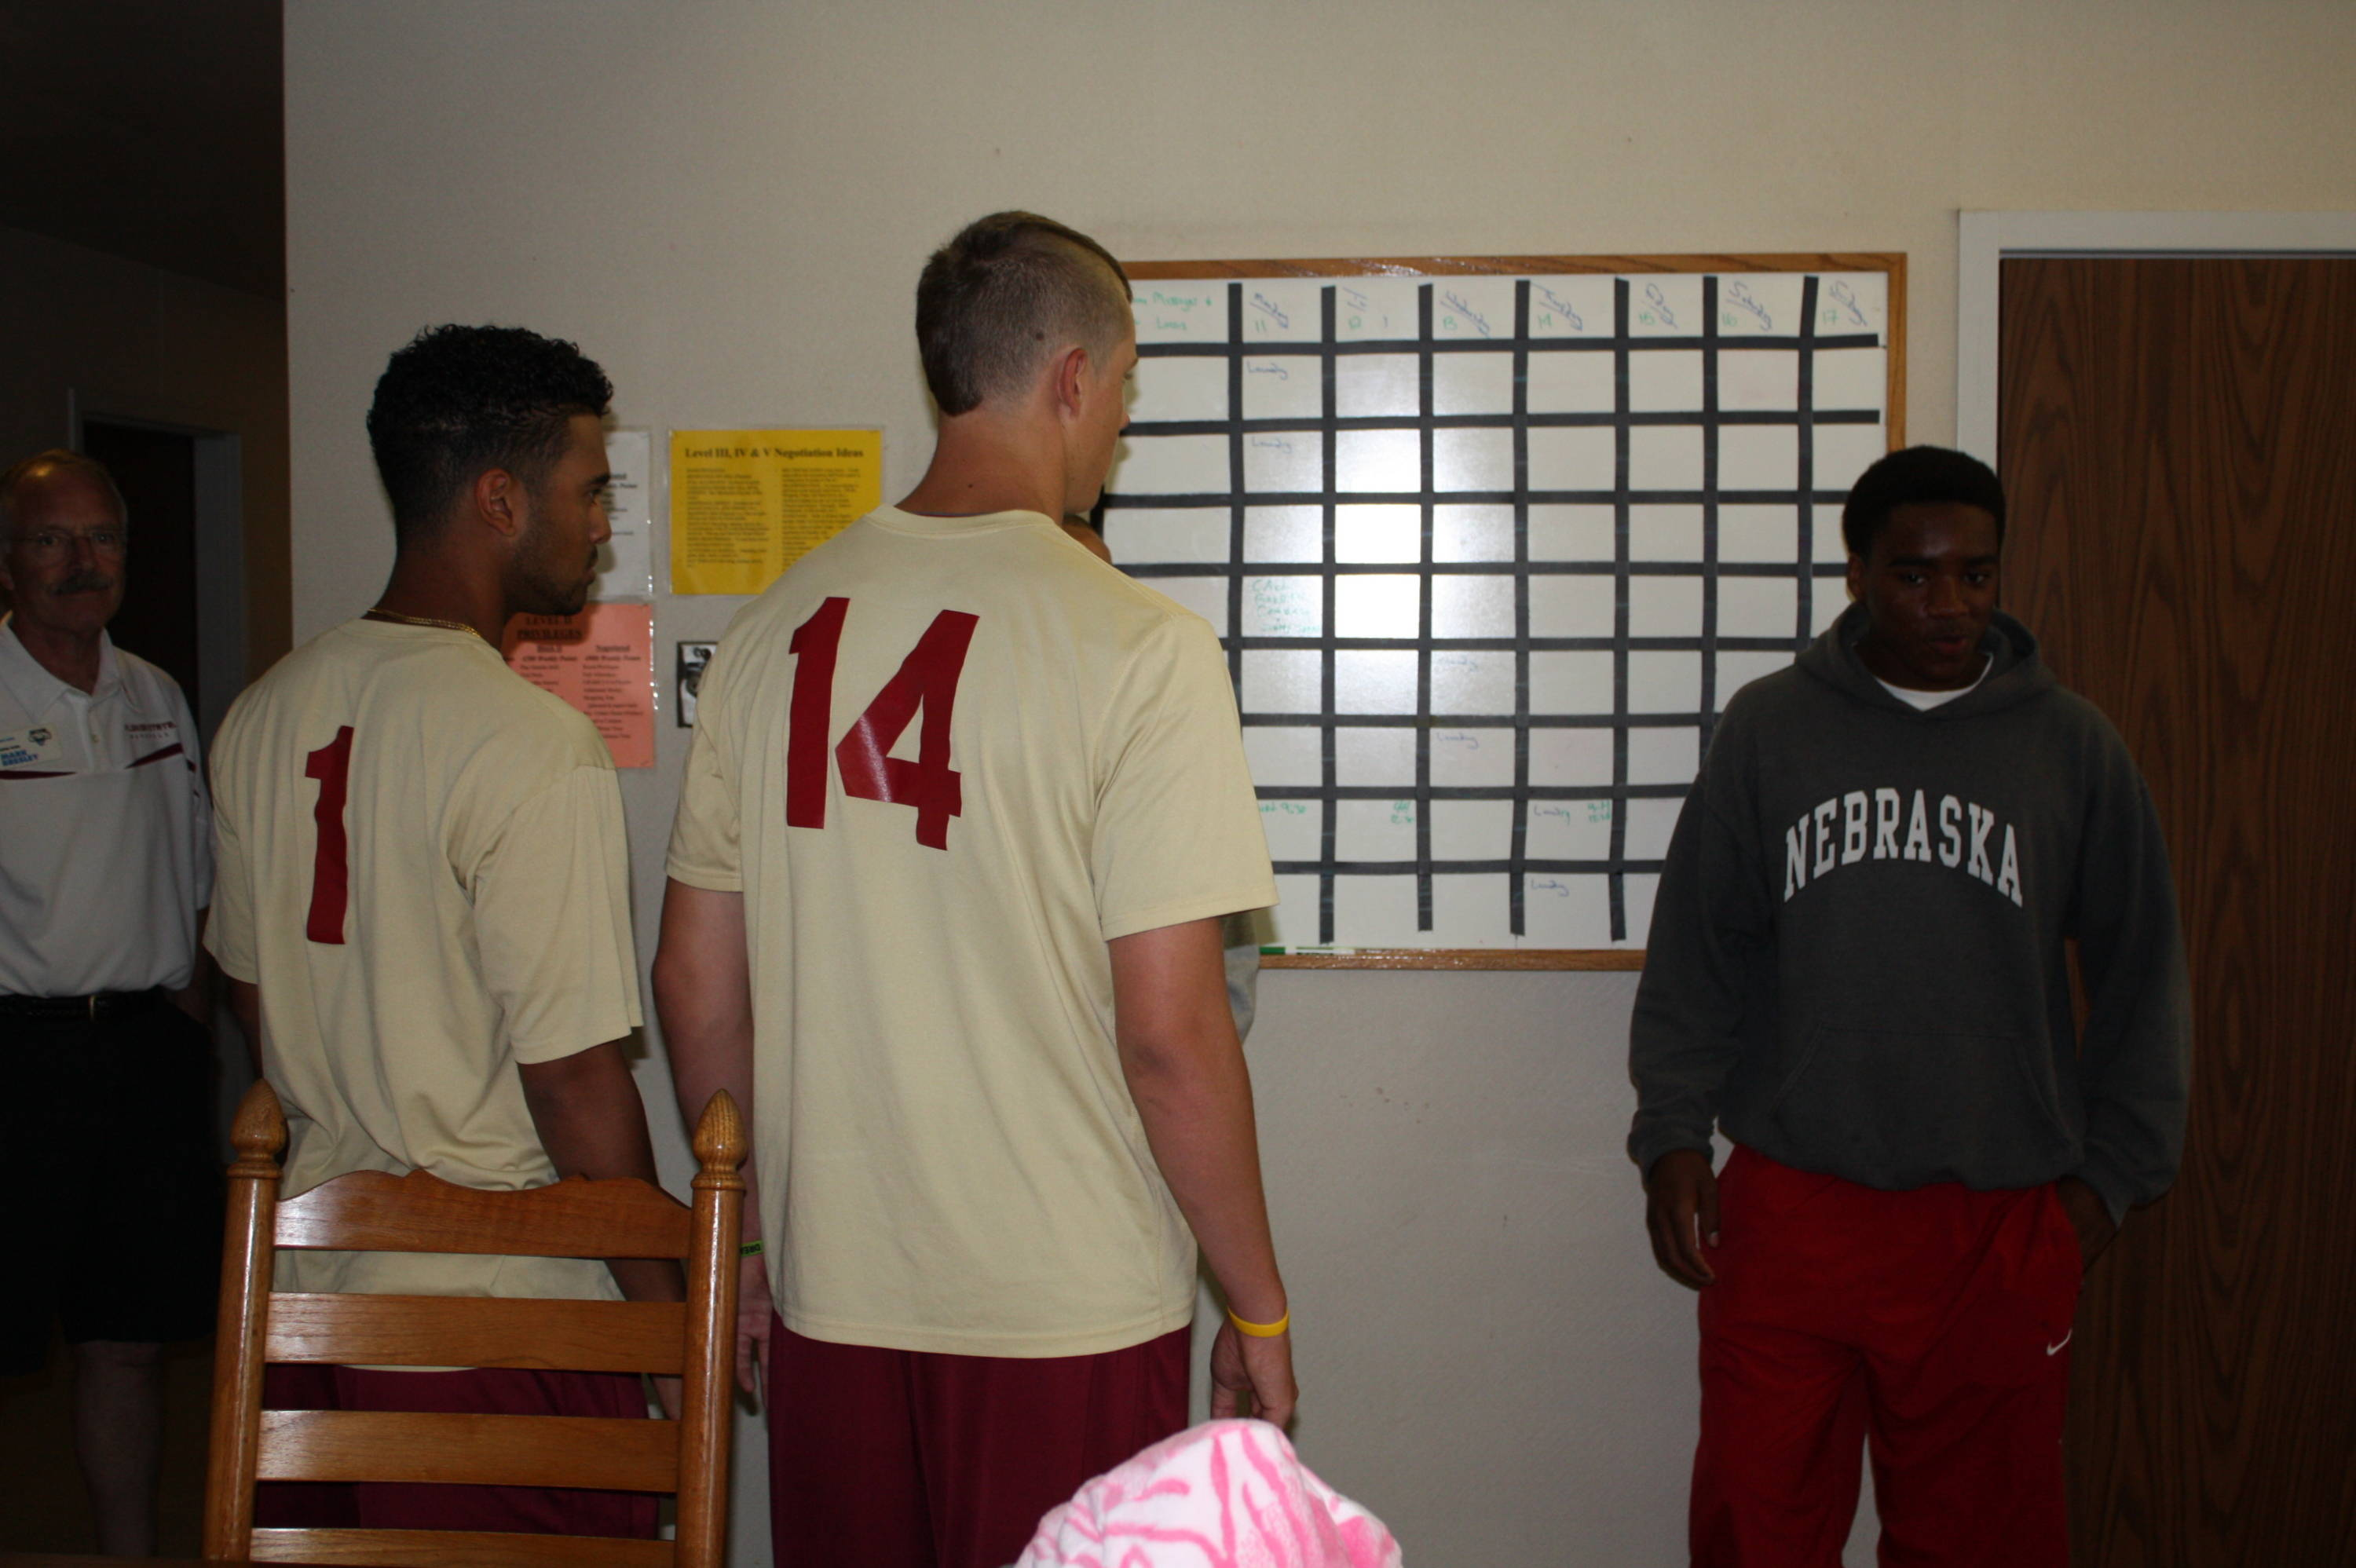 Florida State Baseball visits the Omaha Home for Boys on Saturday, June 16.  Giovanny Alfonzo and Kyle Bird get a tour of a cottage home on campus.